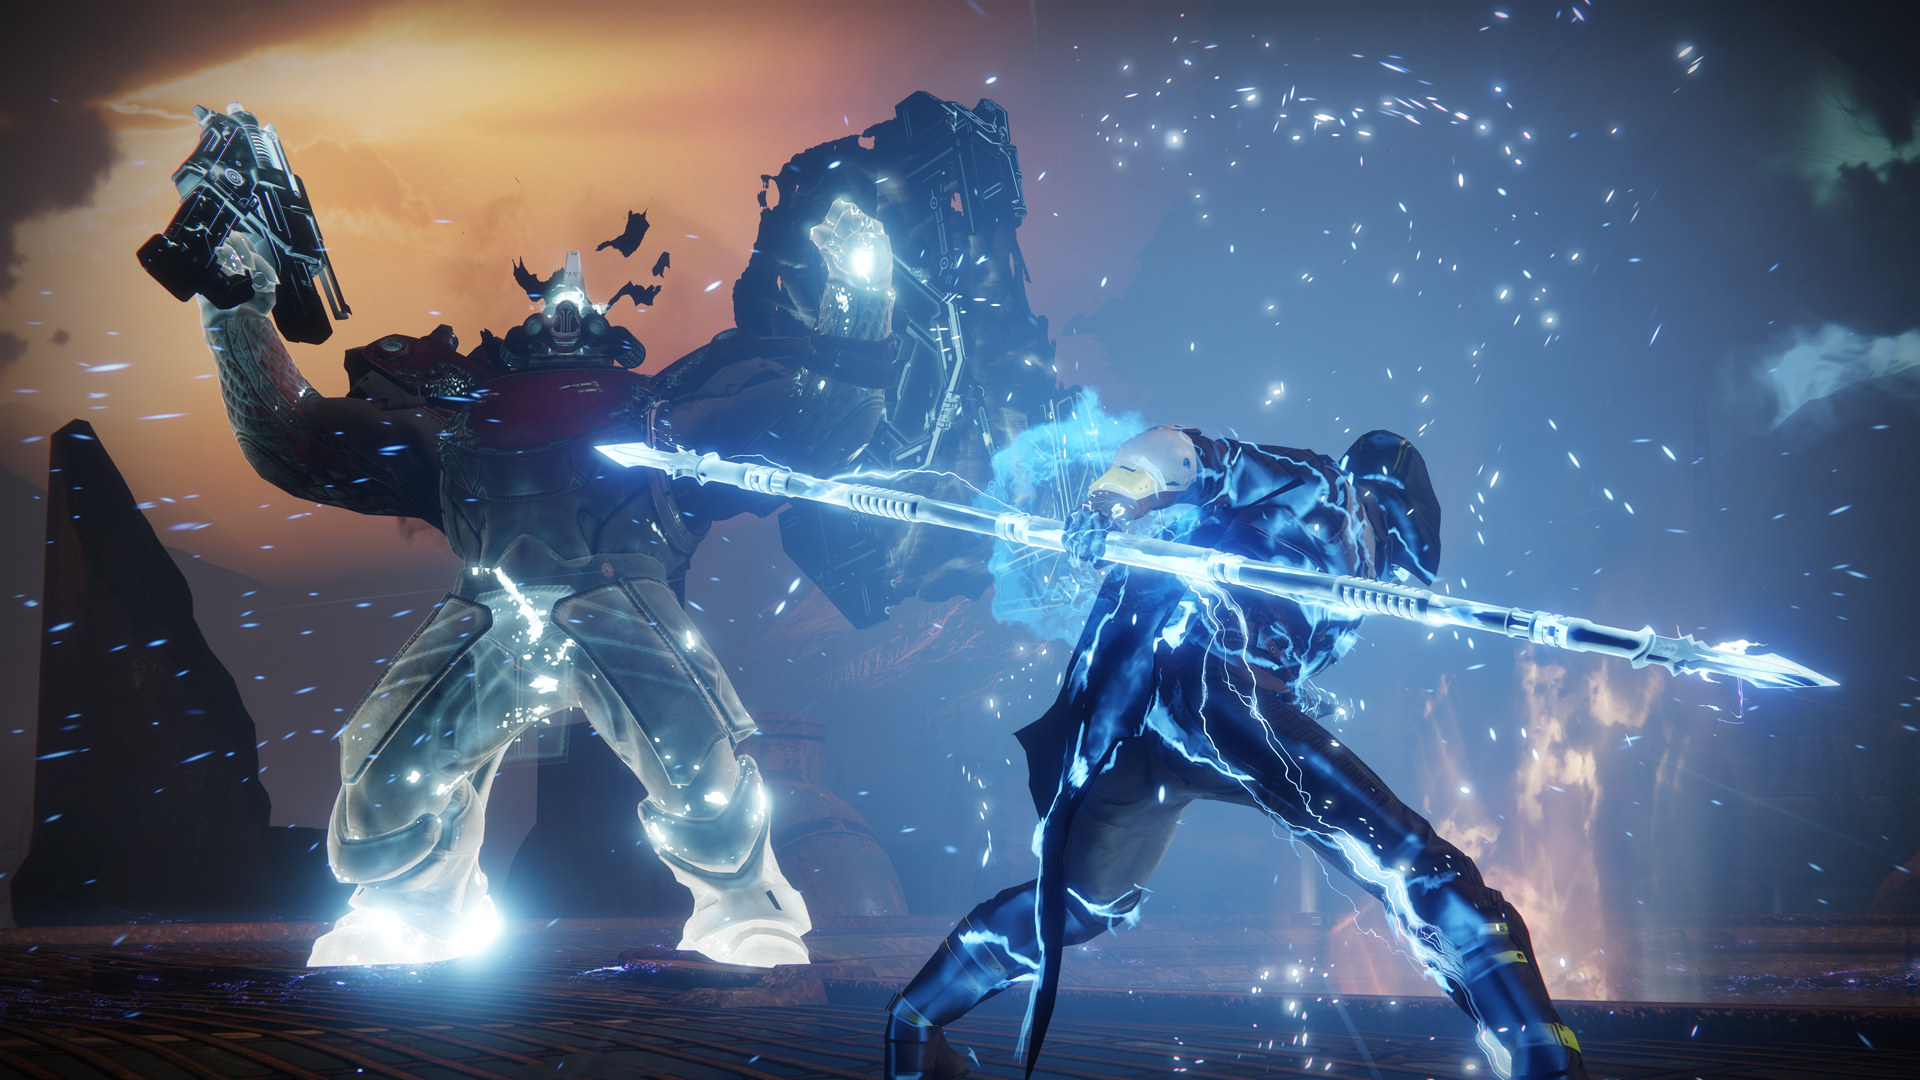 Do not, as this official Destiny 2 screenshot suggests, bring an Arcstrider to Lake of Shadows.